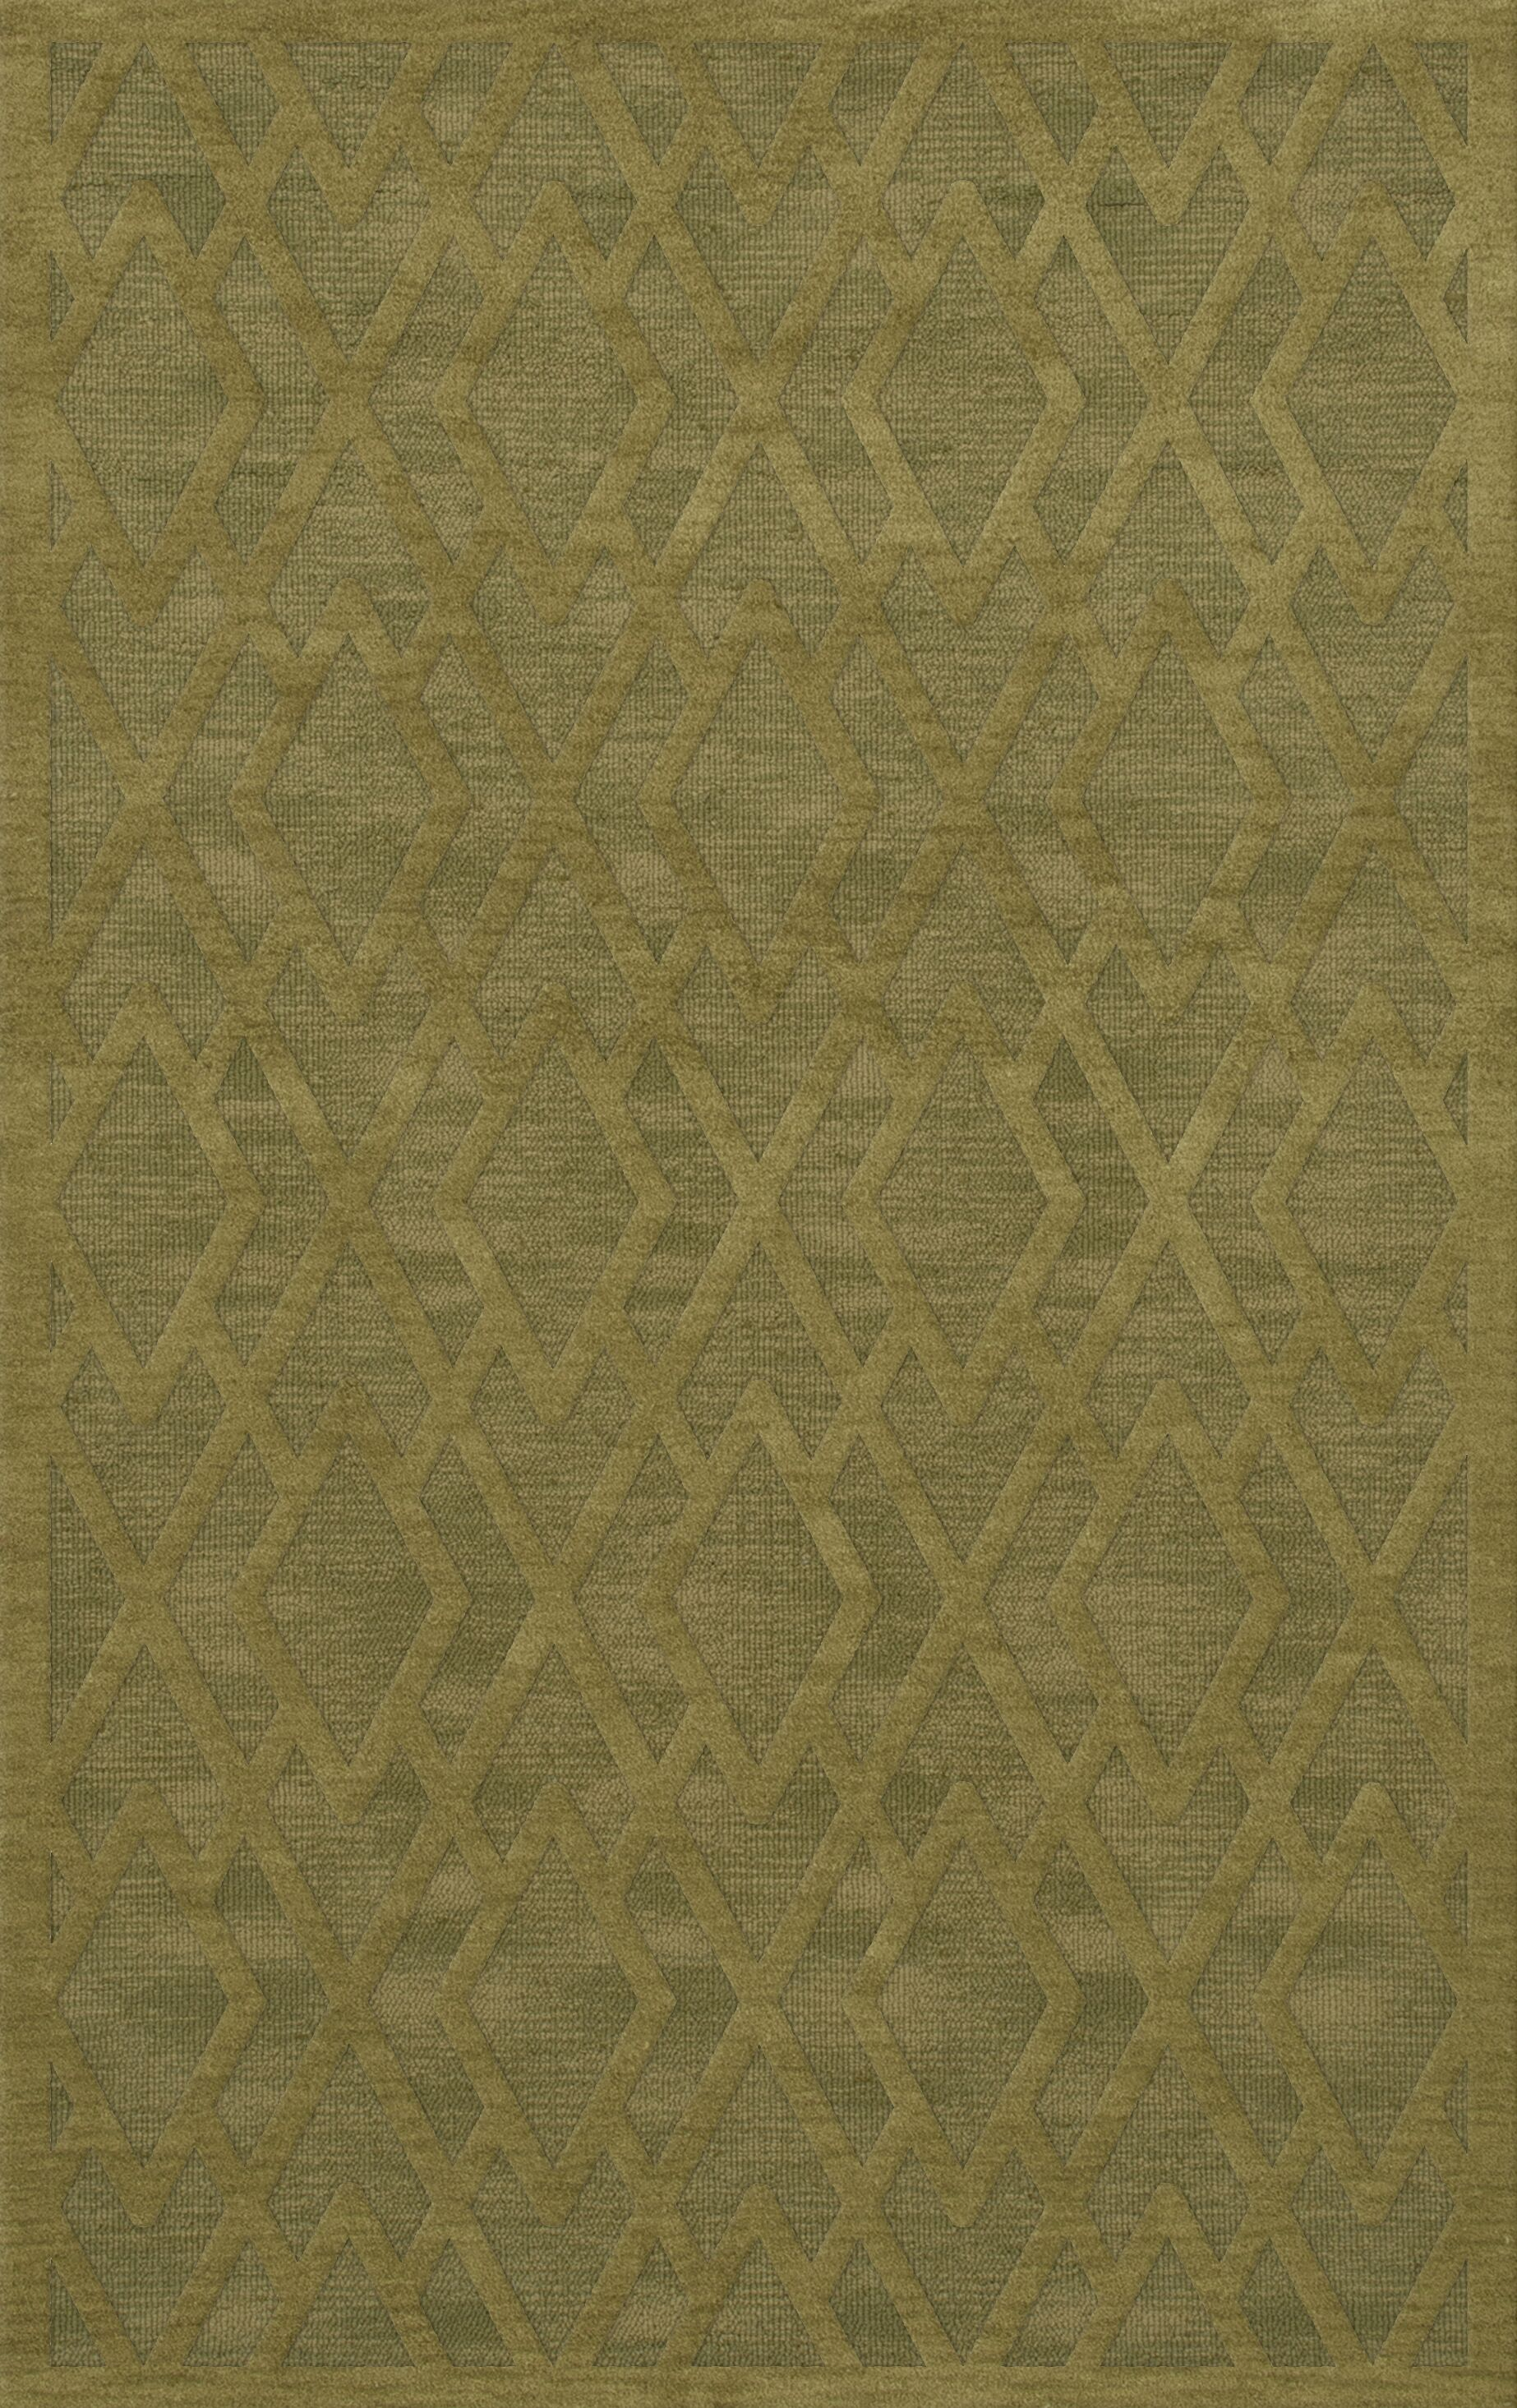 Dover Tufted Wool Pear Area Rug Rug Size: Rectangle 12' x 18'